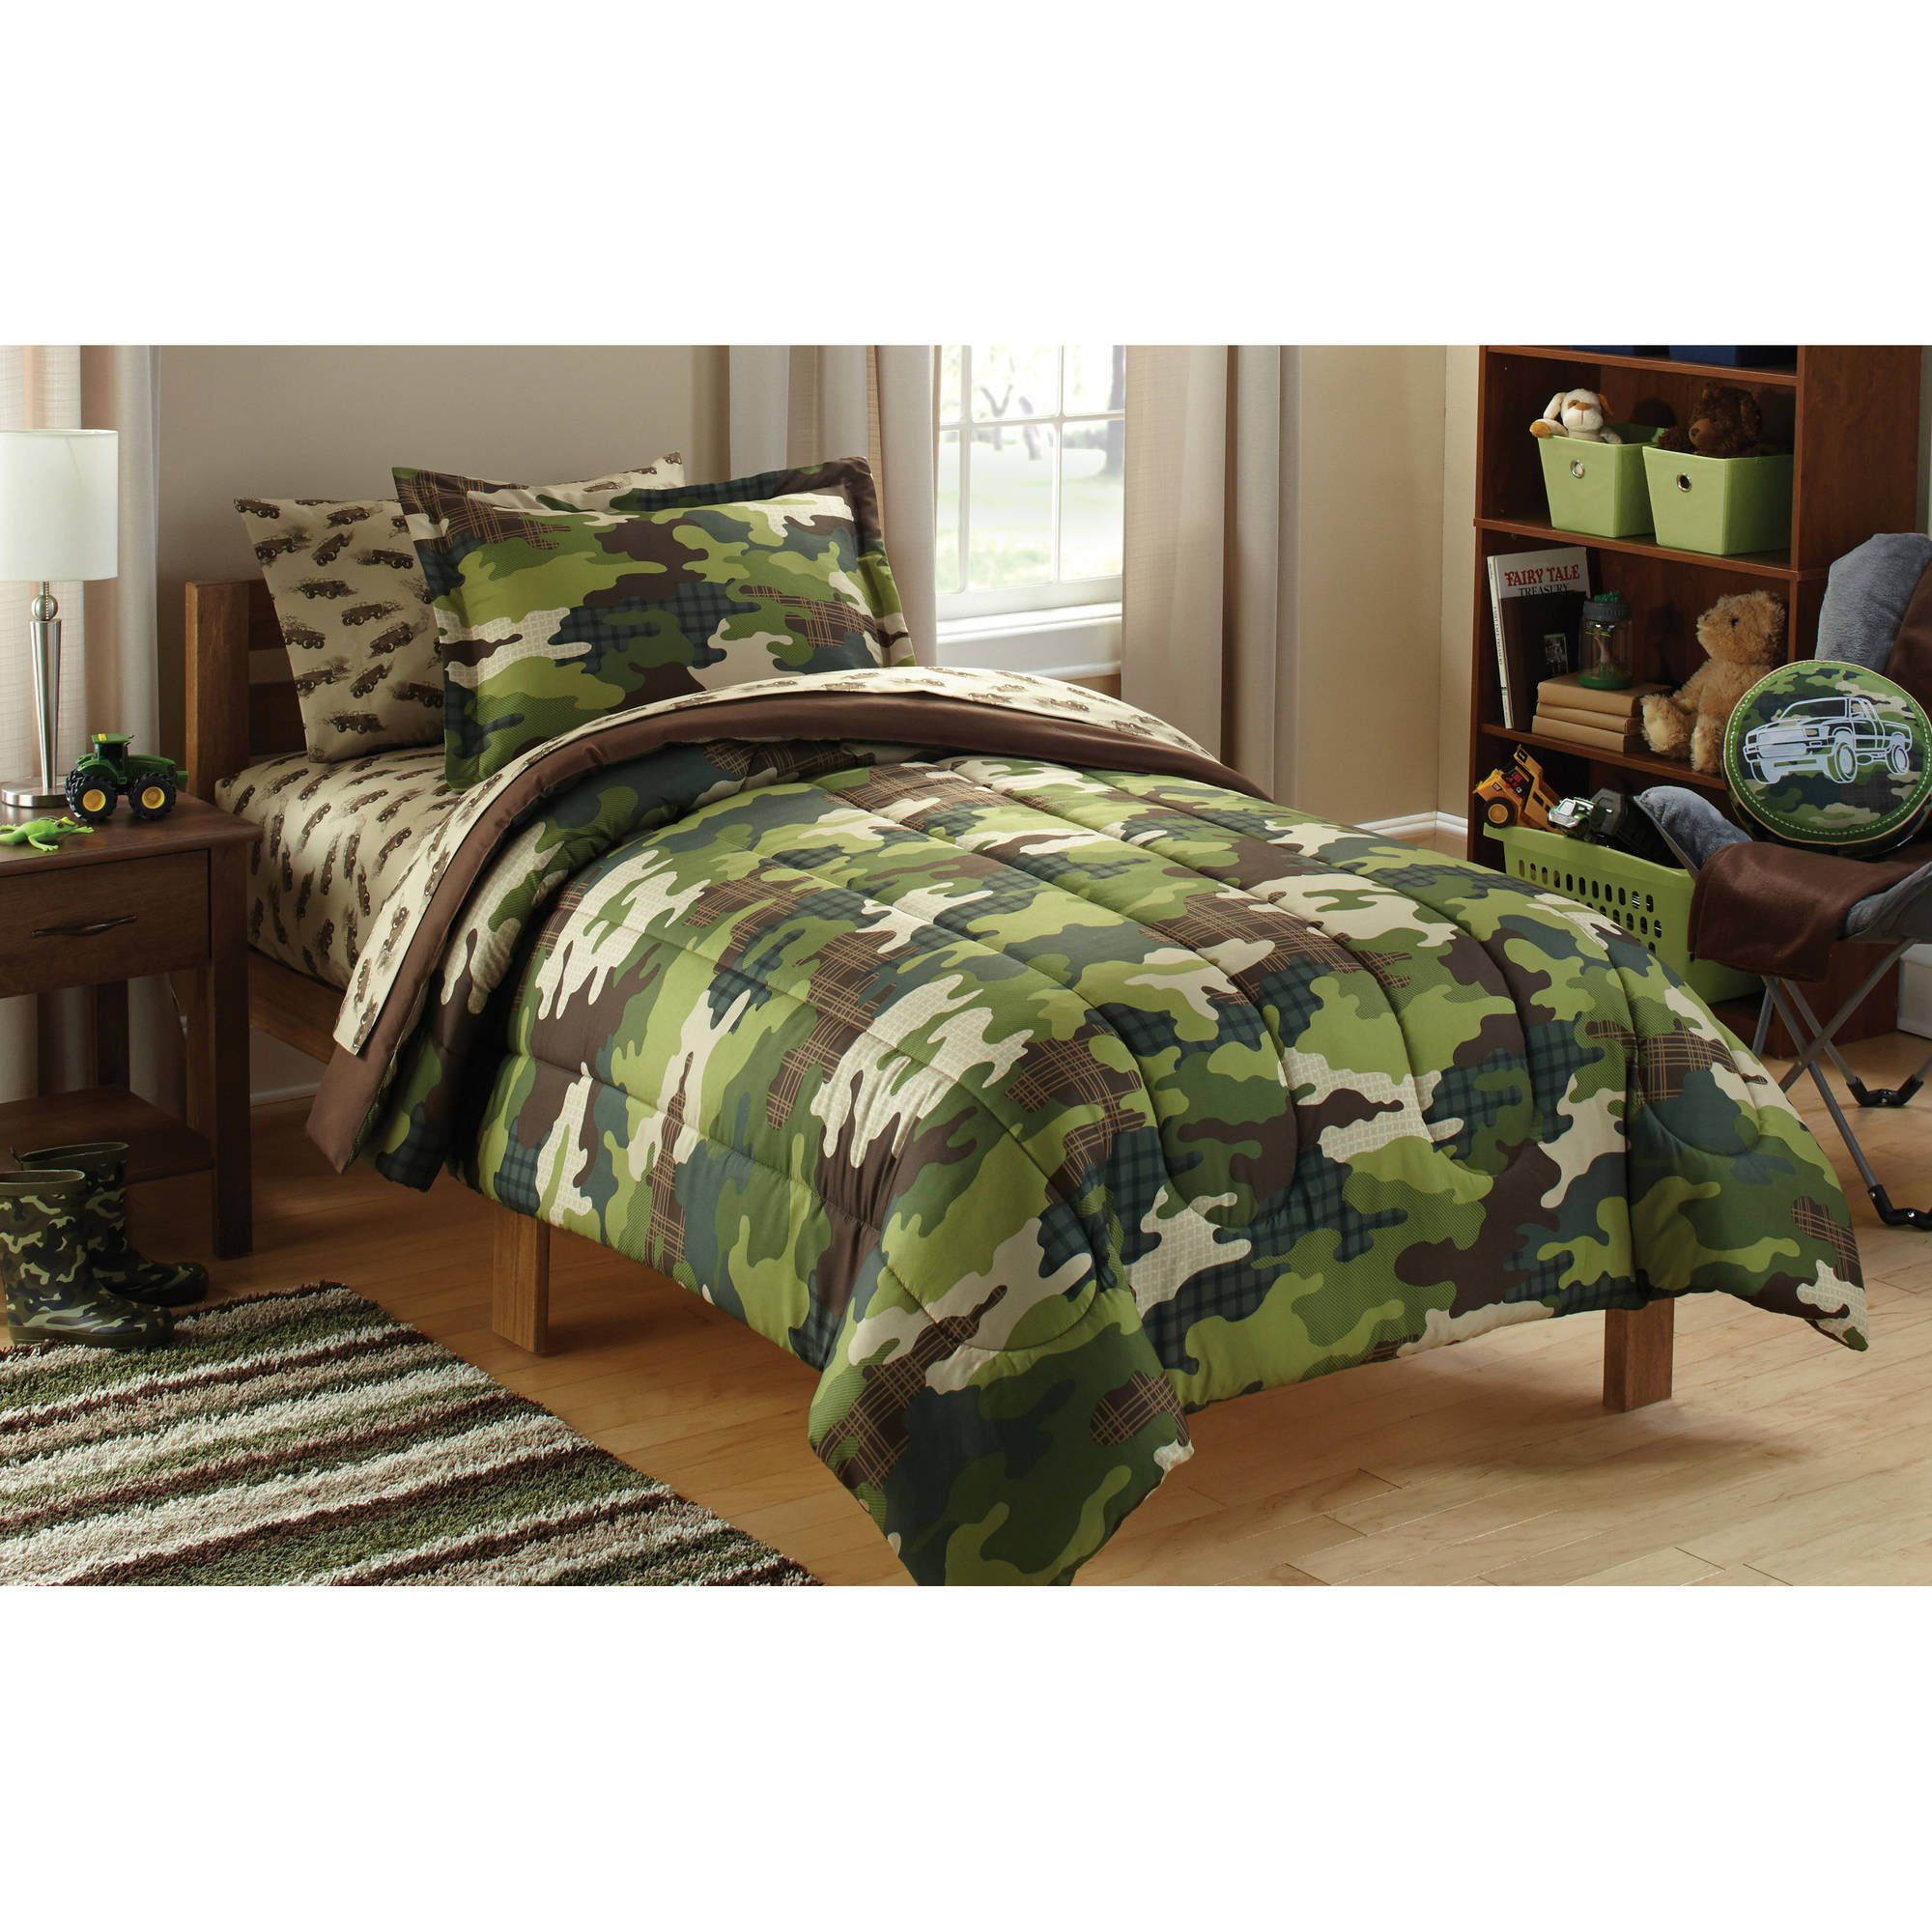 5 Piece Boys Green Camouflage Theme Comforter Twin Set, Beutiful All Over Stylish Camo Army Military Print Outdoor Pattern, Kids Hunting Lodge Bedding, Soldiers Love Themed, Vibrant Colors